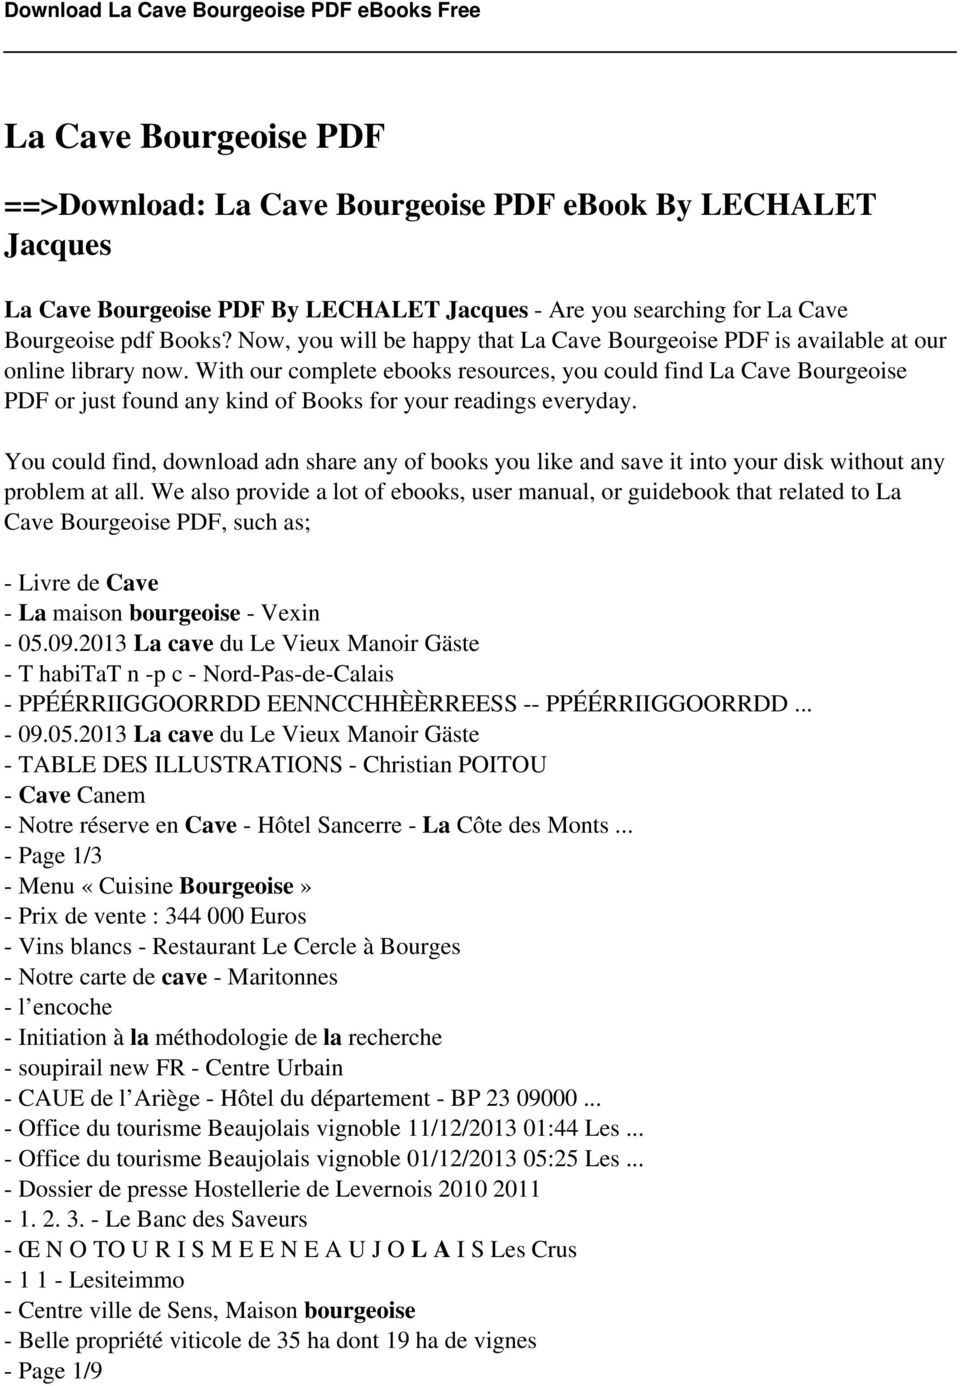 La cave bourgeoise pdf pdf with our complete ebooks resources you could find la cave bourgeoise pdf or just found fandeluxe Image collections